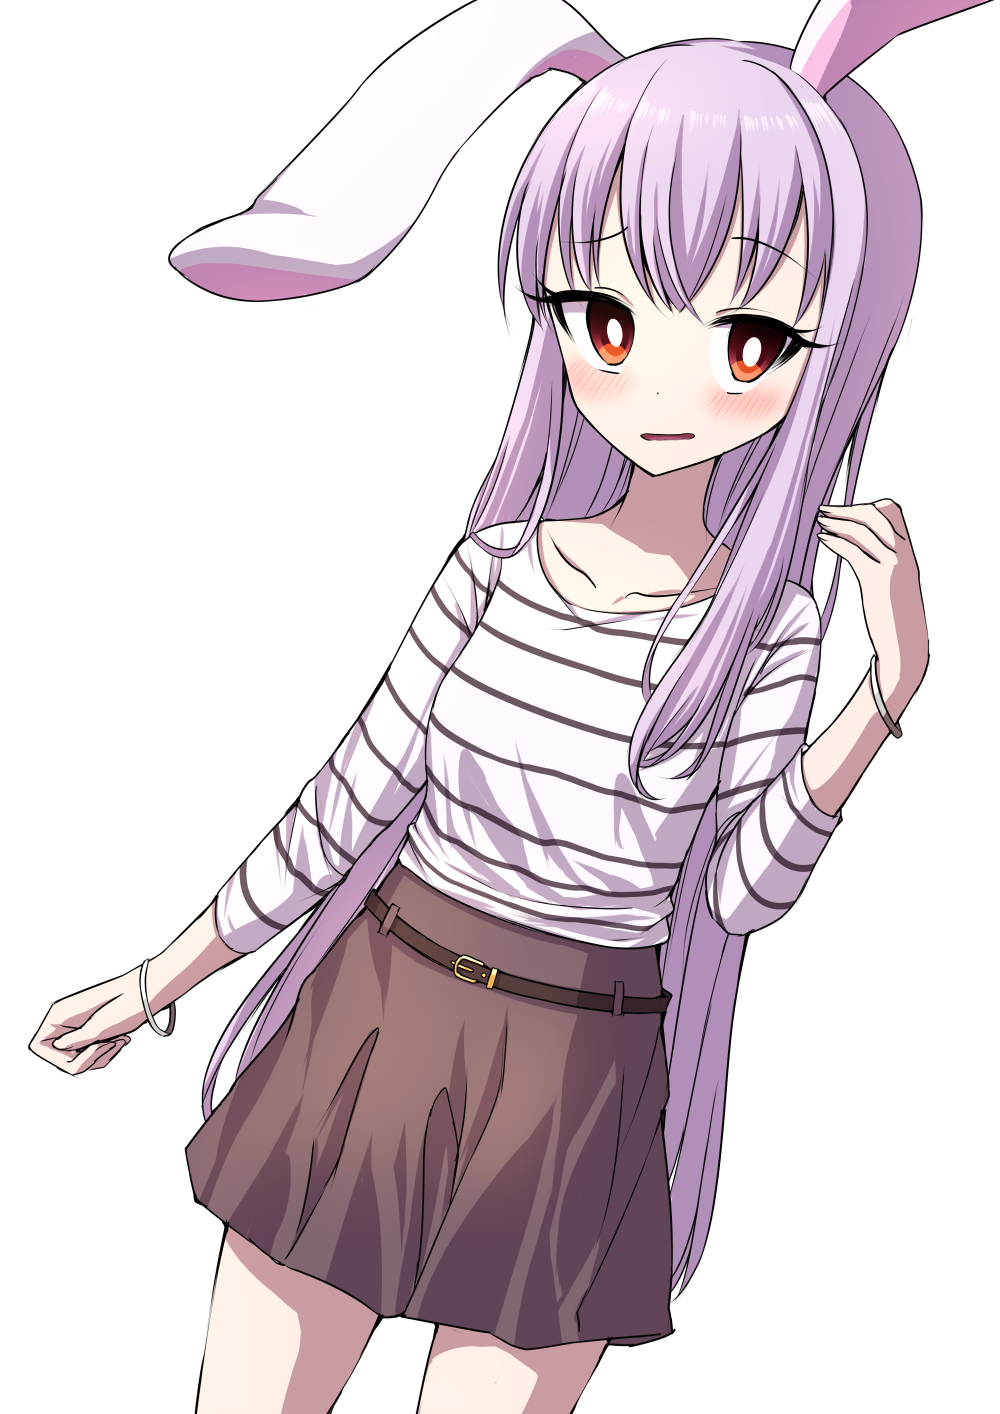 1girl alternate_costume animal_ears arm_up bangs belt blush bracelet breasts bright_pupils brown_skirt casual collarbone commentary_request contemporary cowboy_shot curled_fingers dutch_angle eyebrows_visible_through_hair highres horizontal_stripes jewelry lavender_hair long_hair long_sleeves looking_at_viewer parted_lips rabbit_ears red_eyes reisen_udongein_inaba shirt simple_background skirt small_breasts solo striped striped_shirt touhou tsukimirin very_long_hair white_background white_pupils